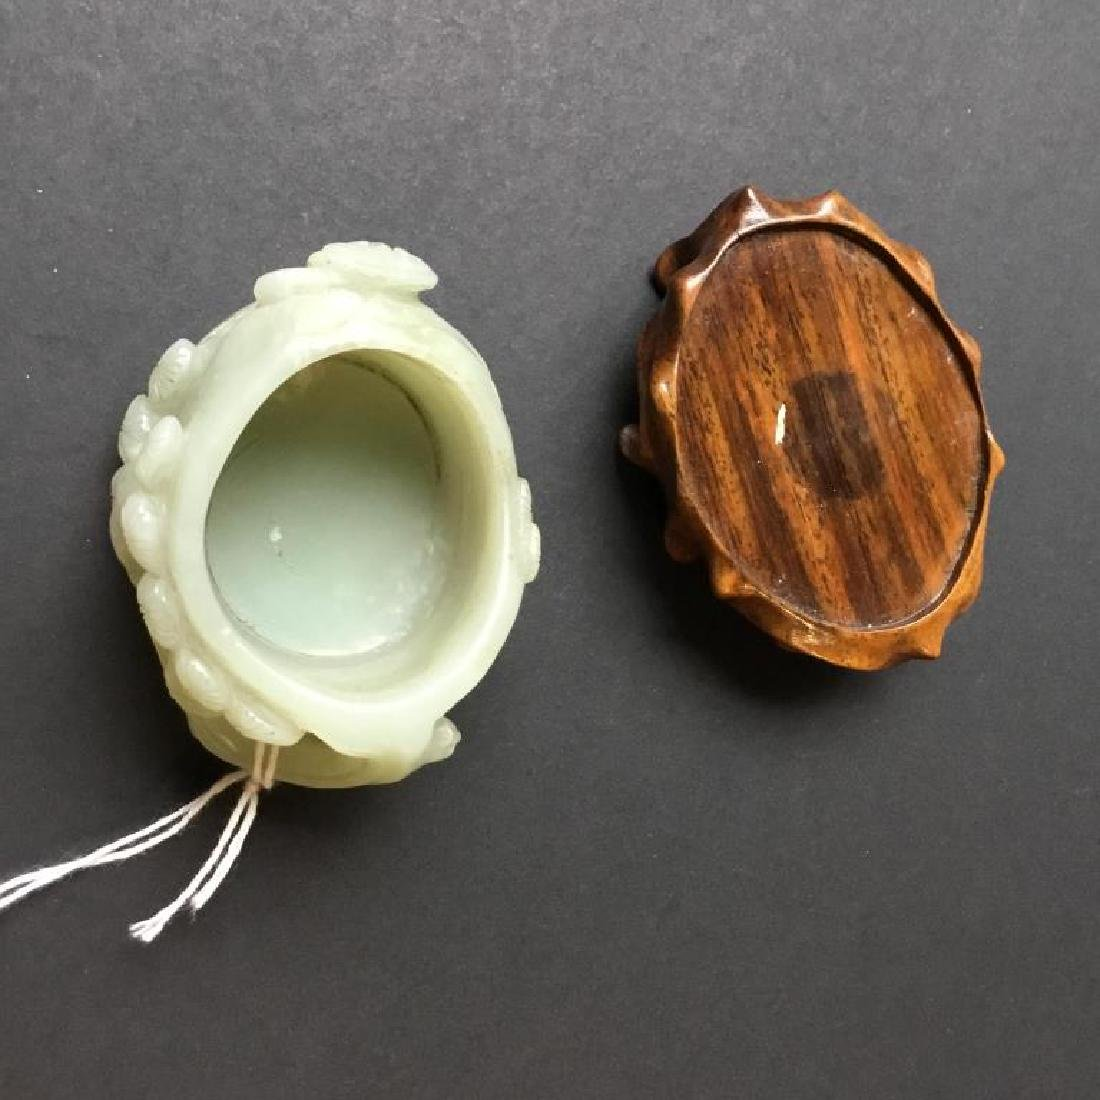 CHINESE JADE CARVED TREE FORM WASHER - 7